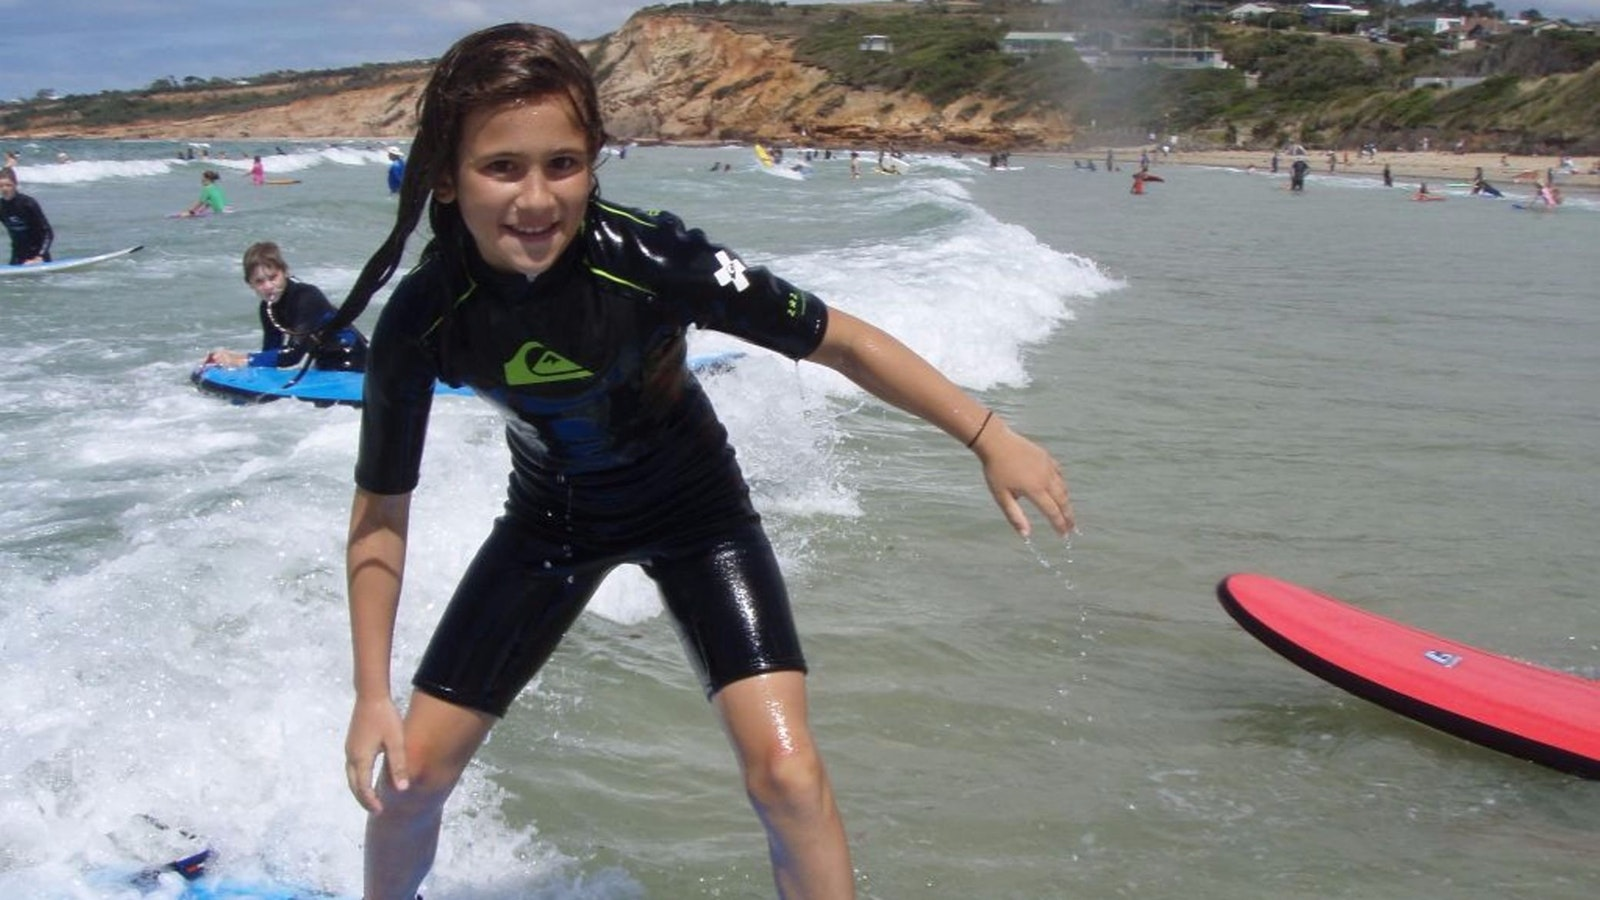 Anglesea Girl Surfing